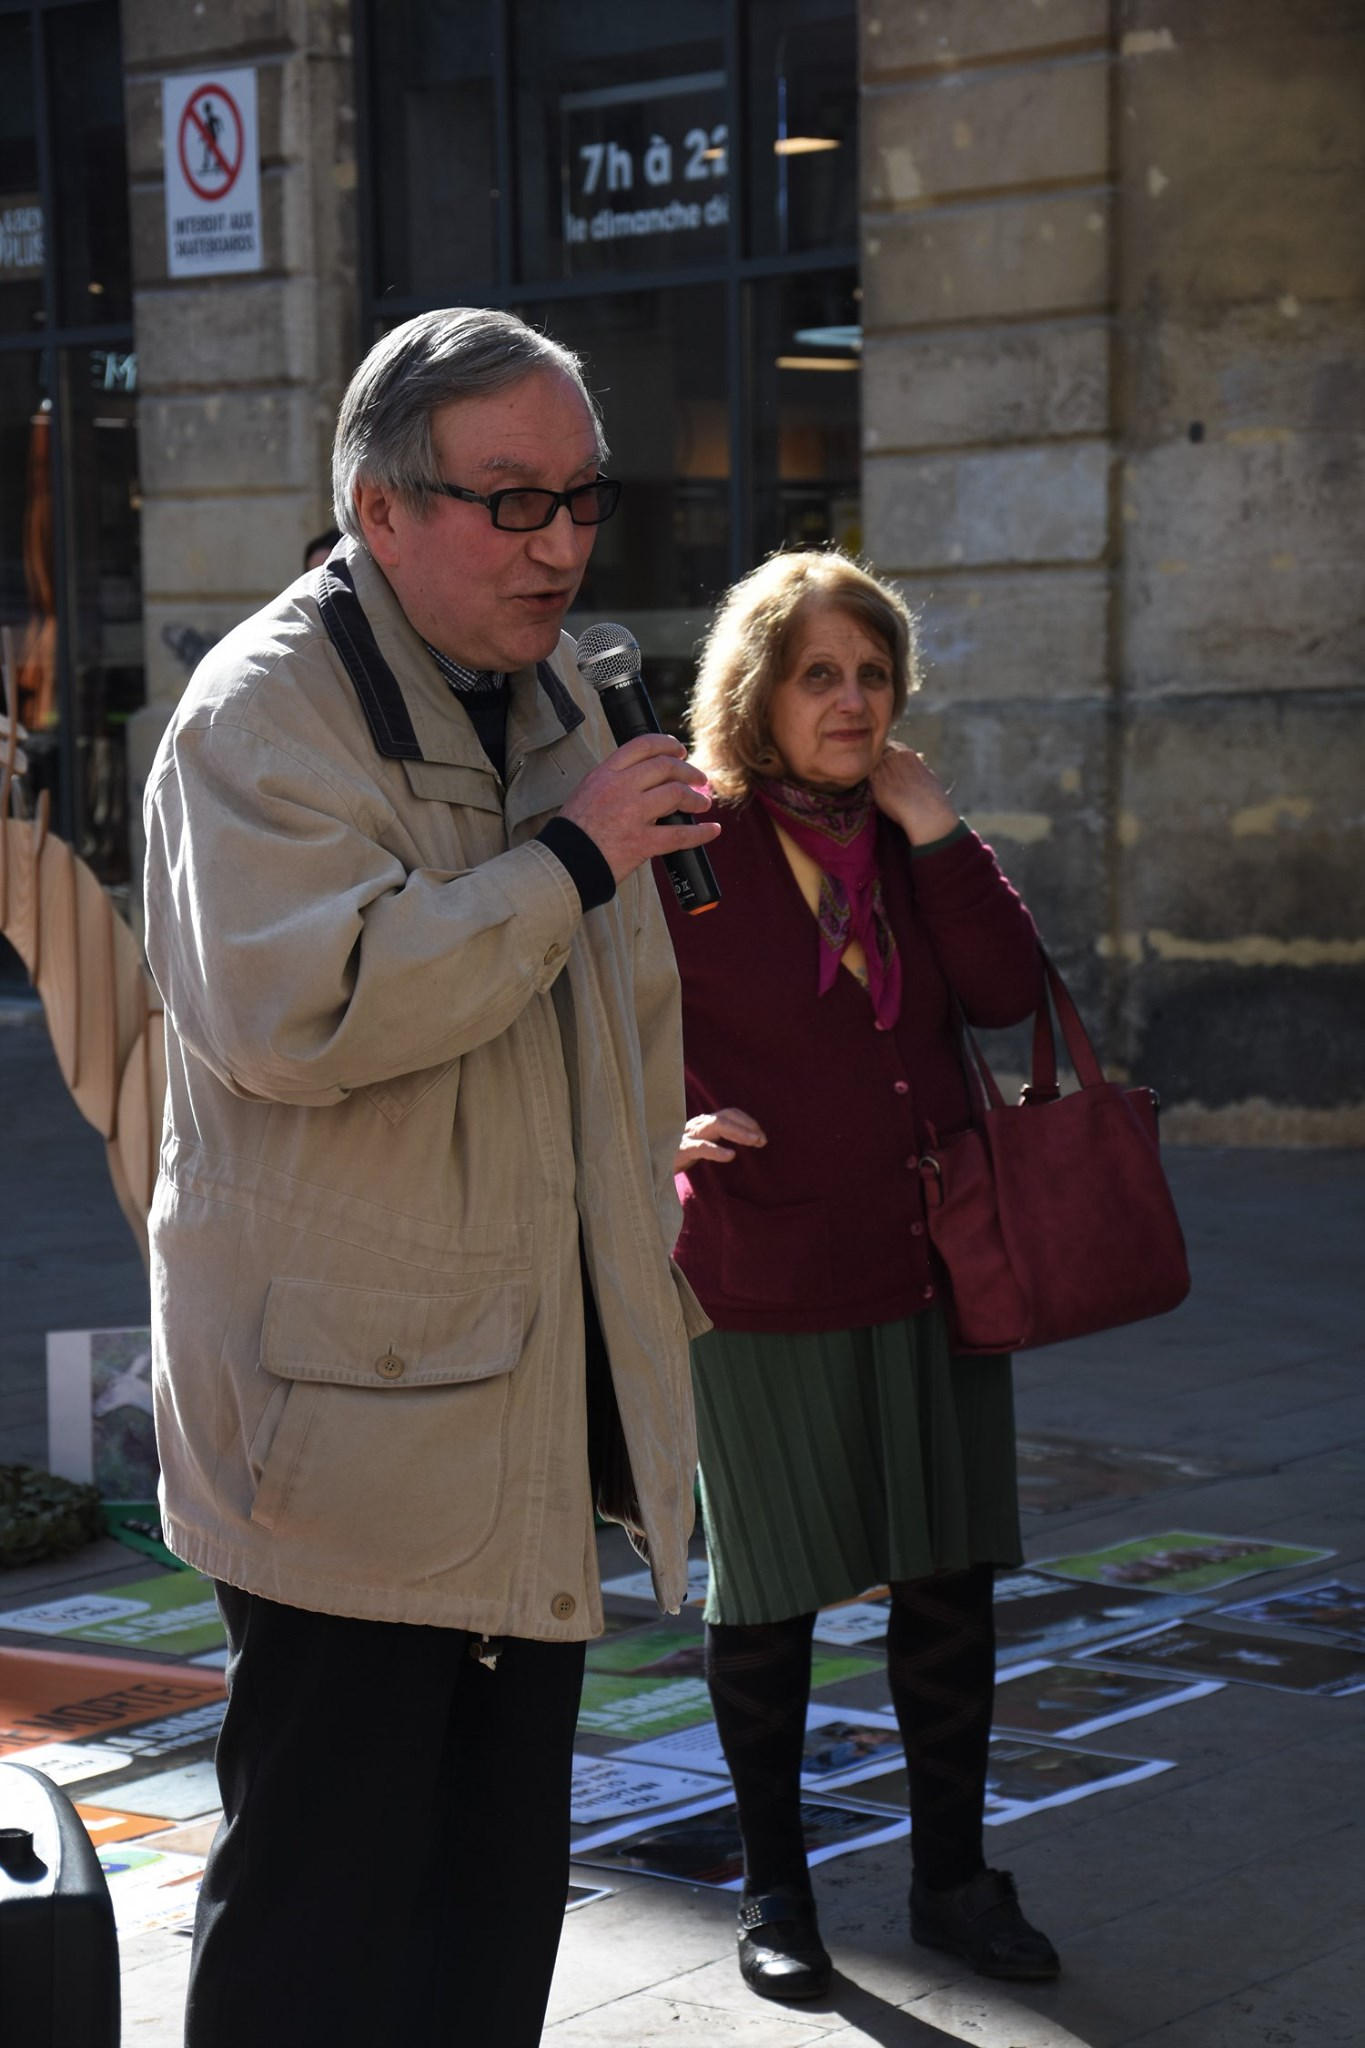 manifestation_chasse_parti_animaliste_2020_discours3